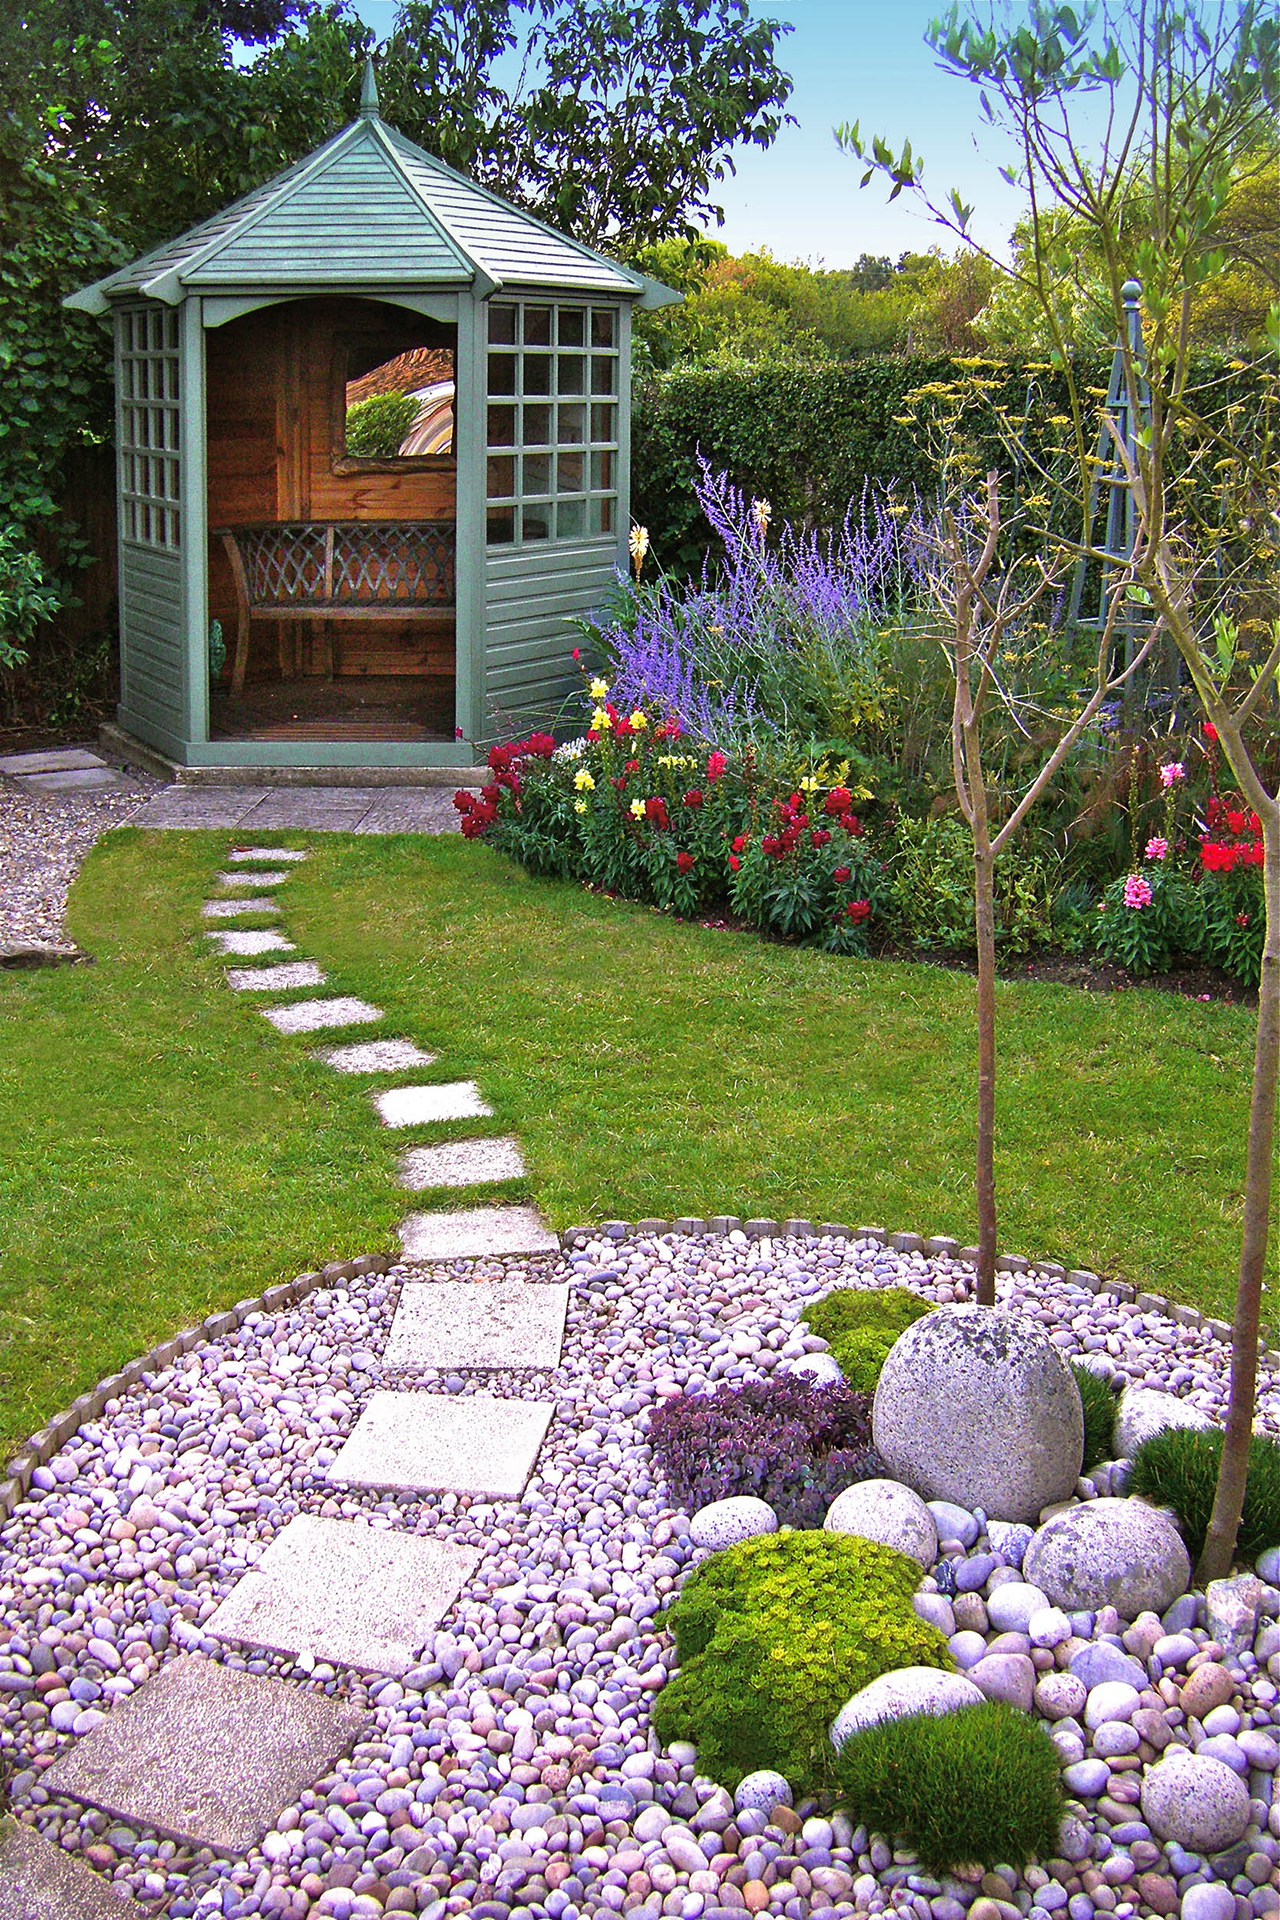 50 Best Backyard Landscaping Ideas And Designs In 2019 with regard to 10 Smart Initiatives of How to Makeover Images Of Backyard Landscaping Ideas